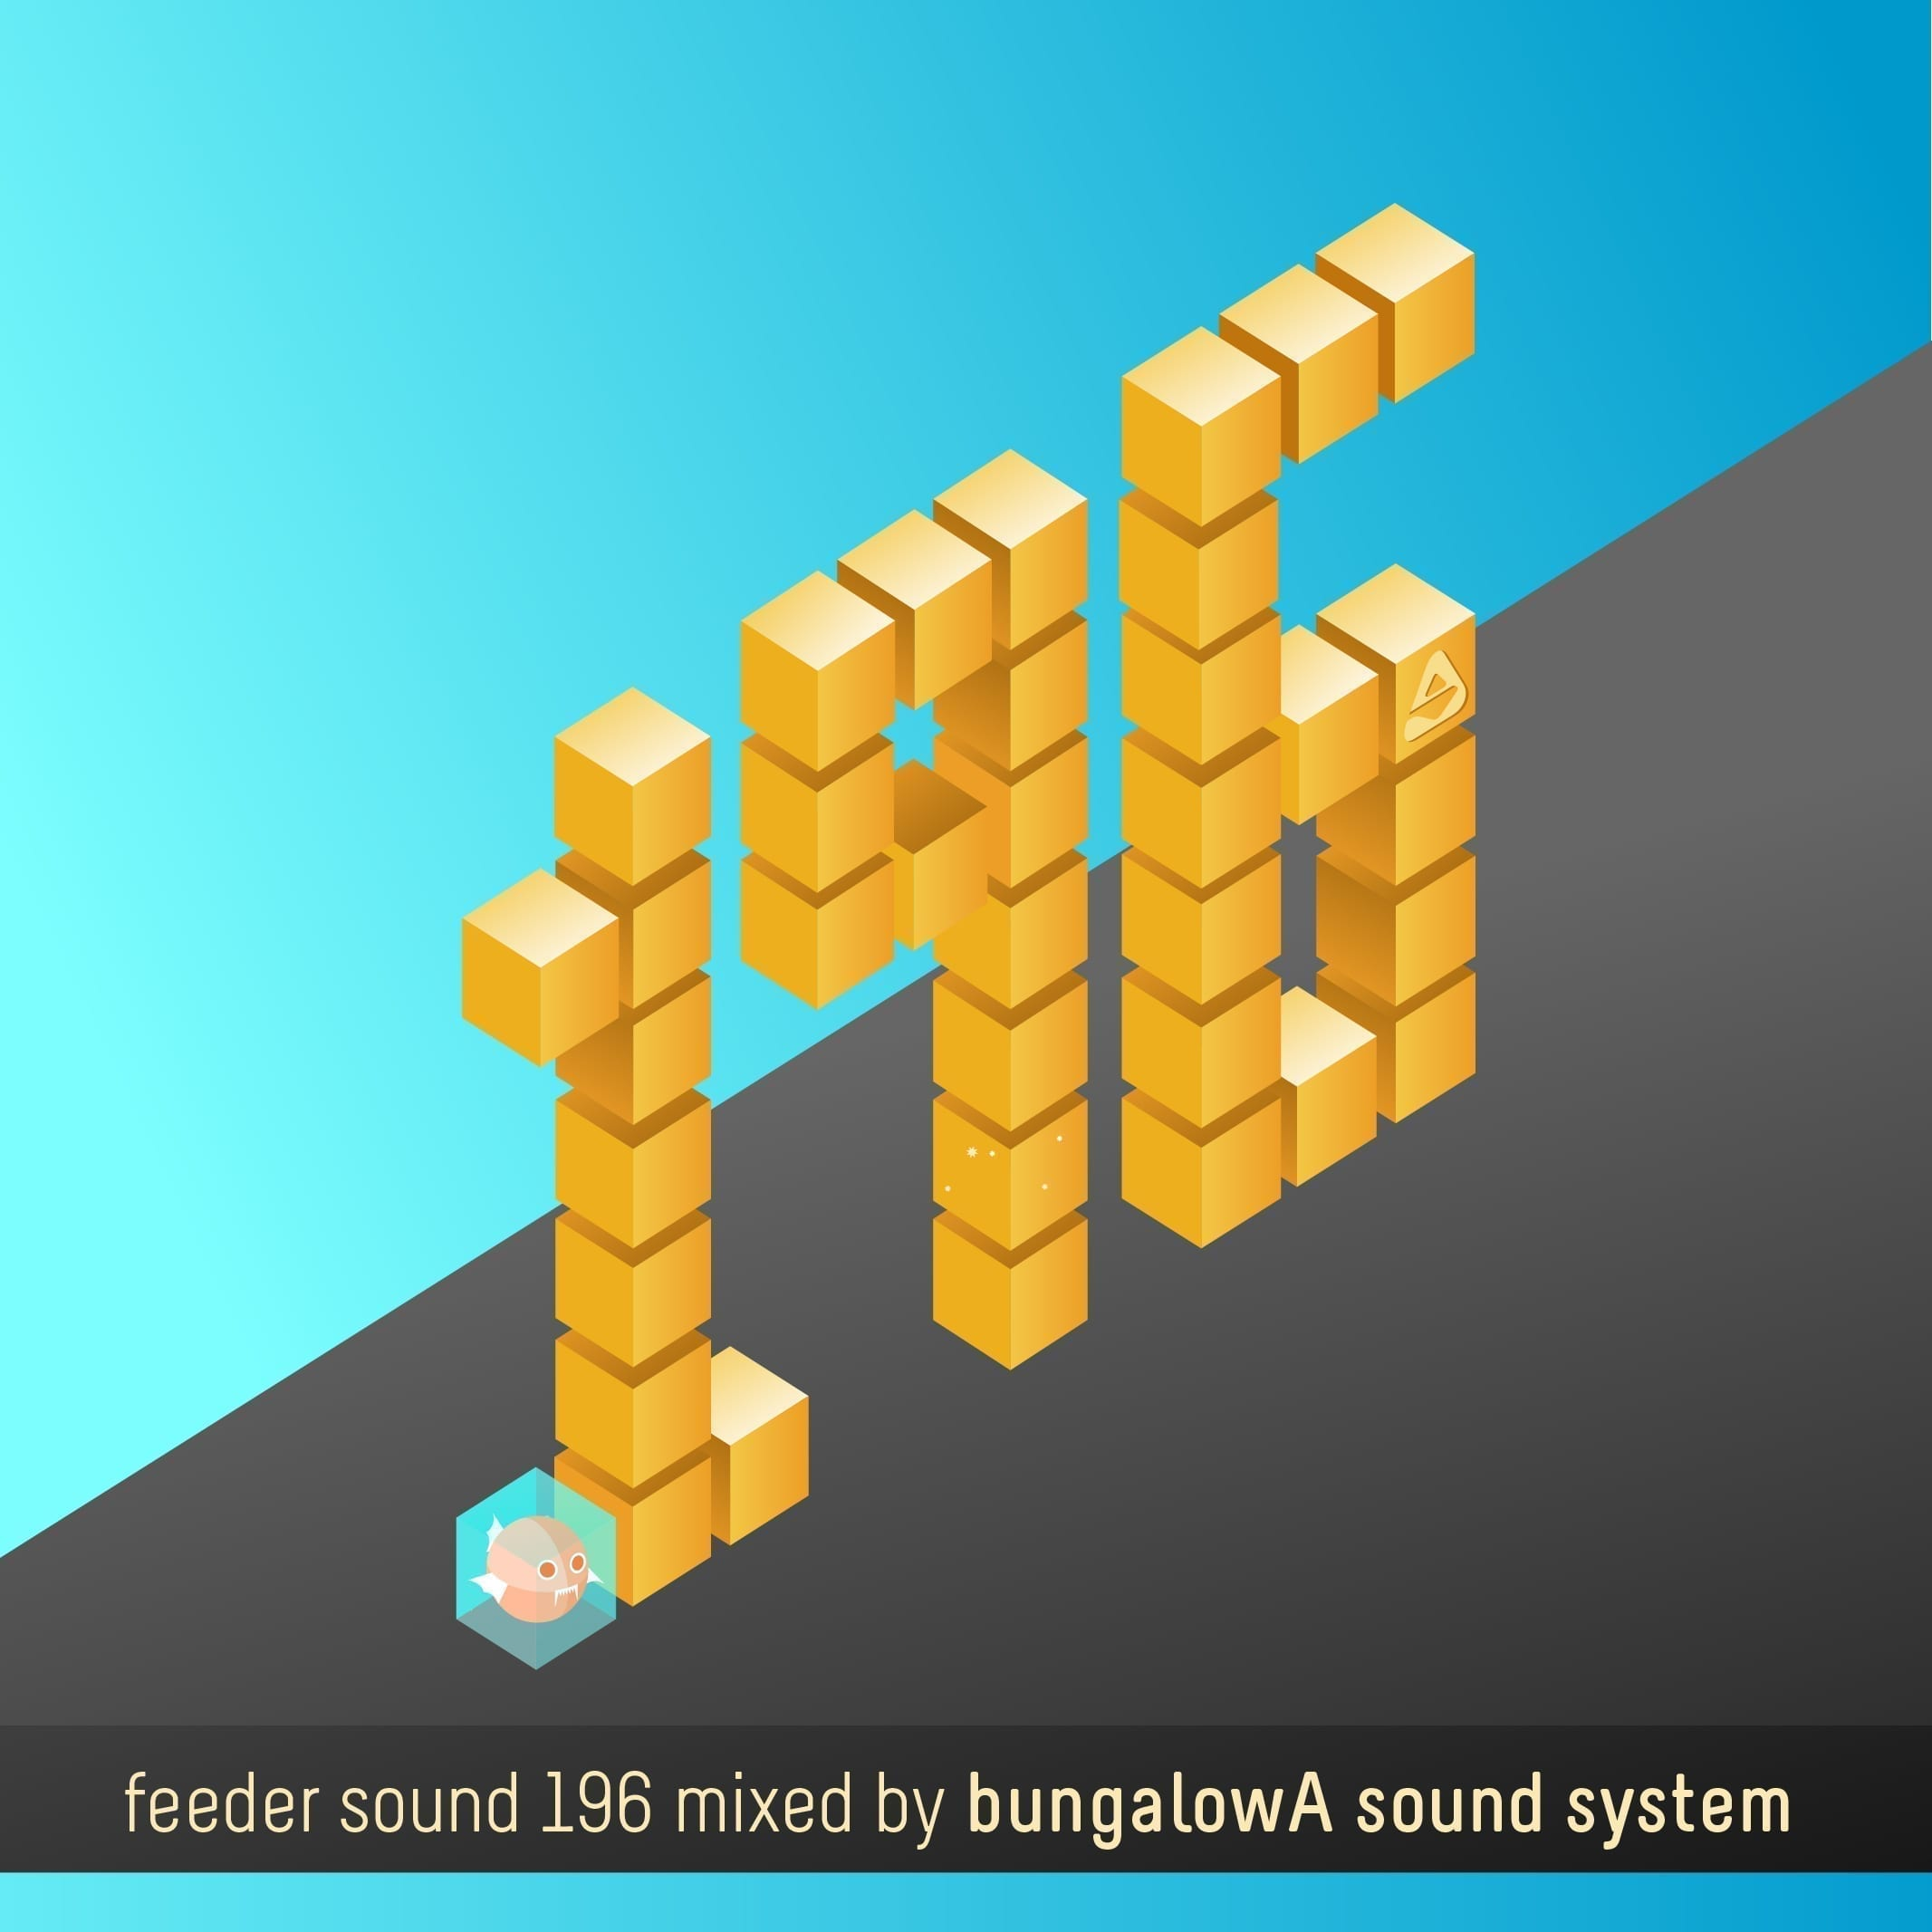 feeder sound 196 mixed by bungalowA sound system